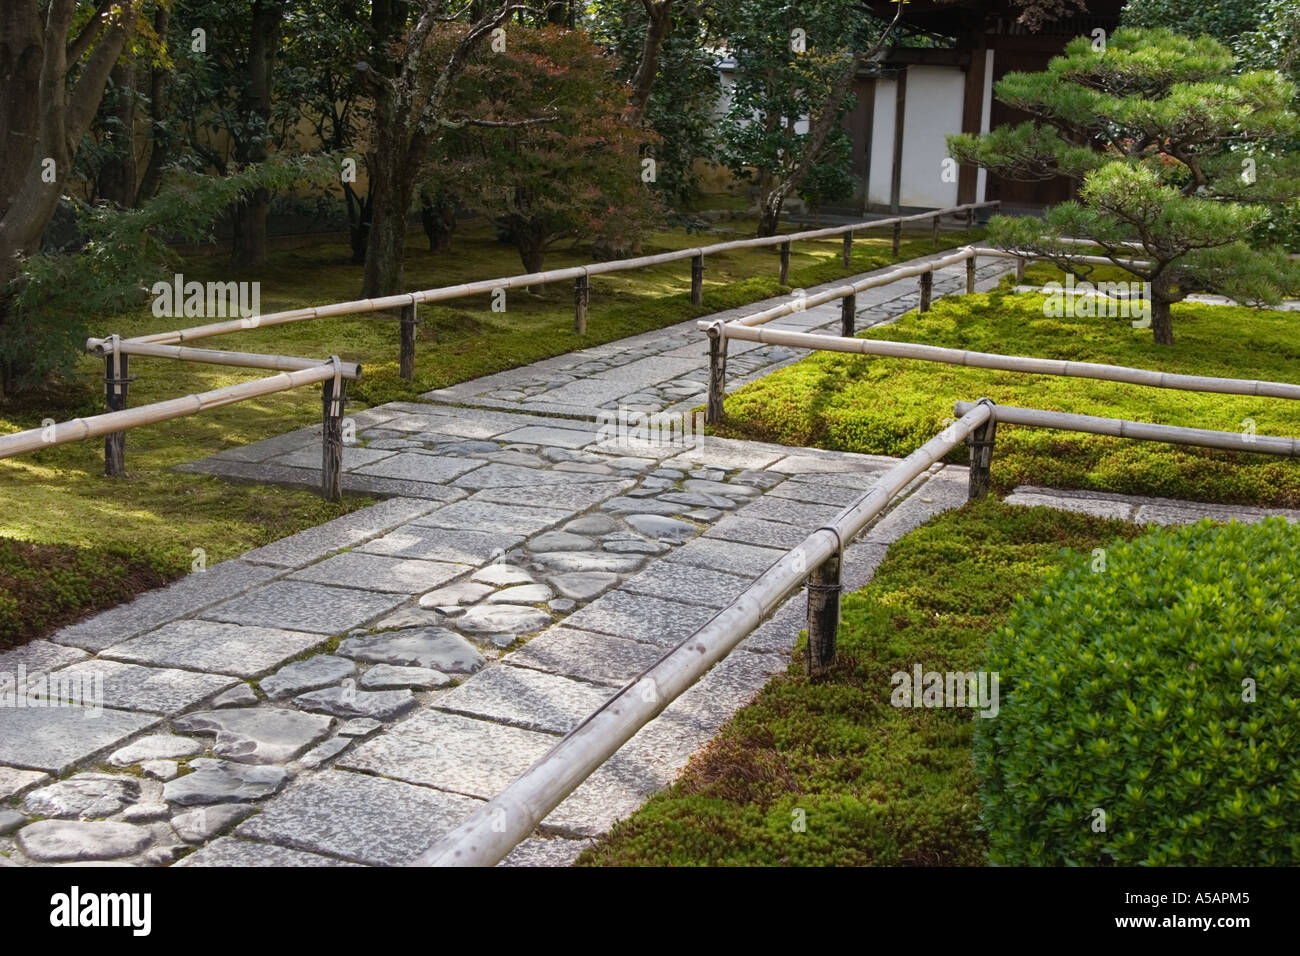 The stone path at the entrance of Korin in garden which is a subtemple of Daitokuji Temple Kyoto Kansai Region JapanStock Photo